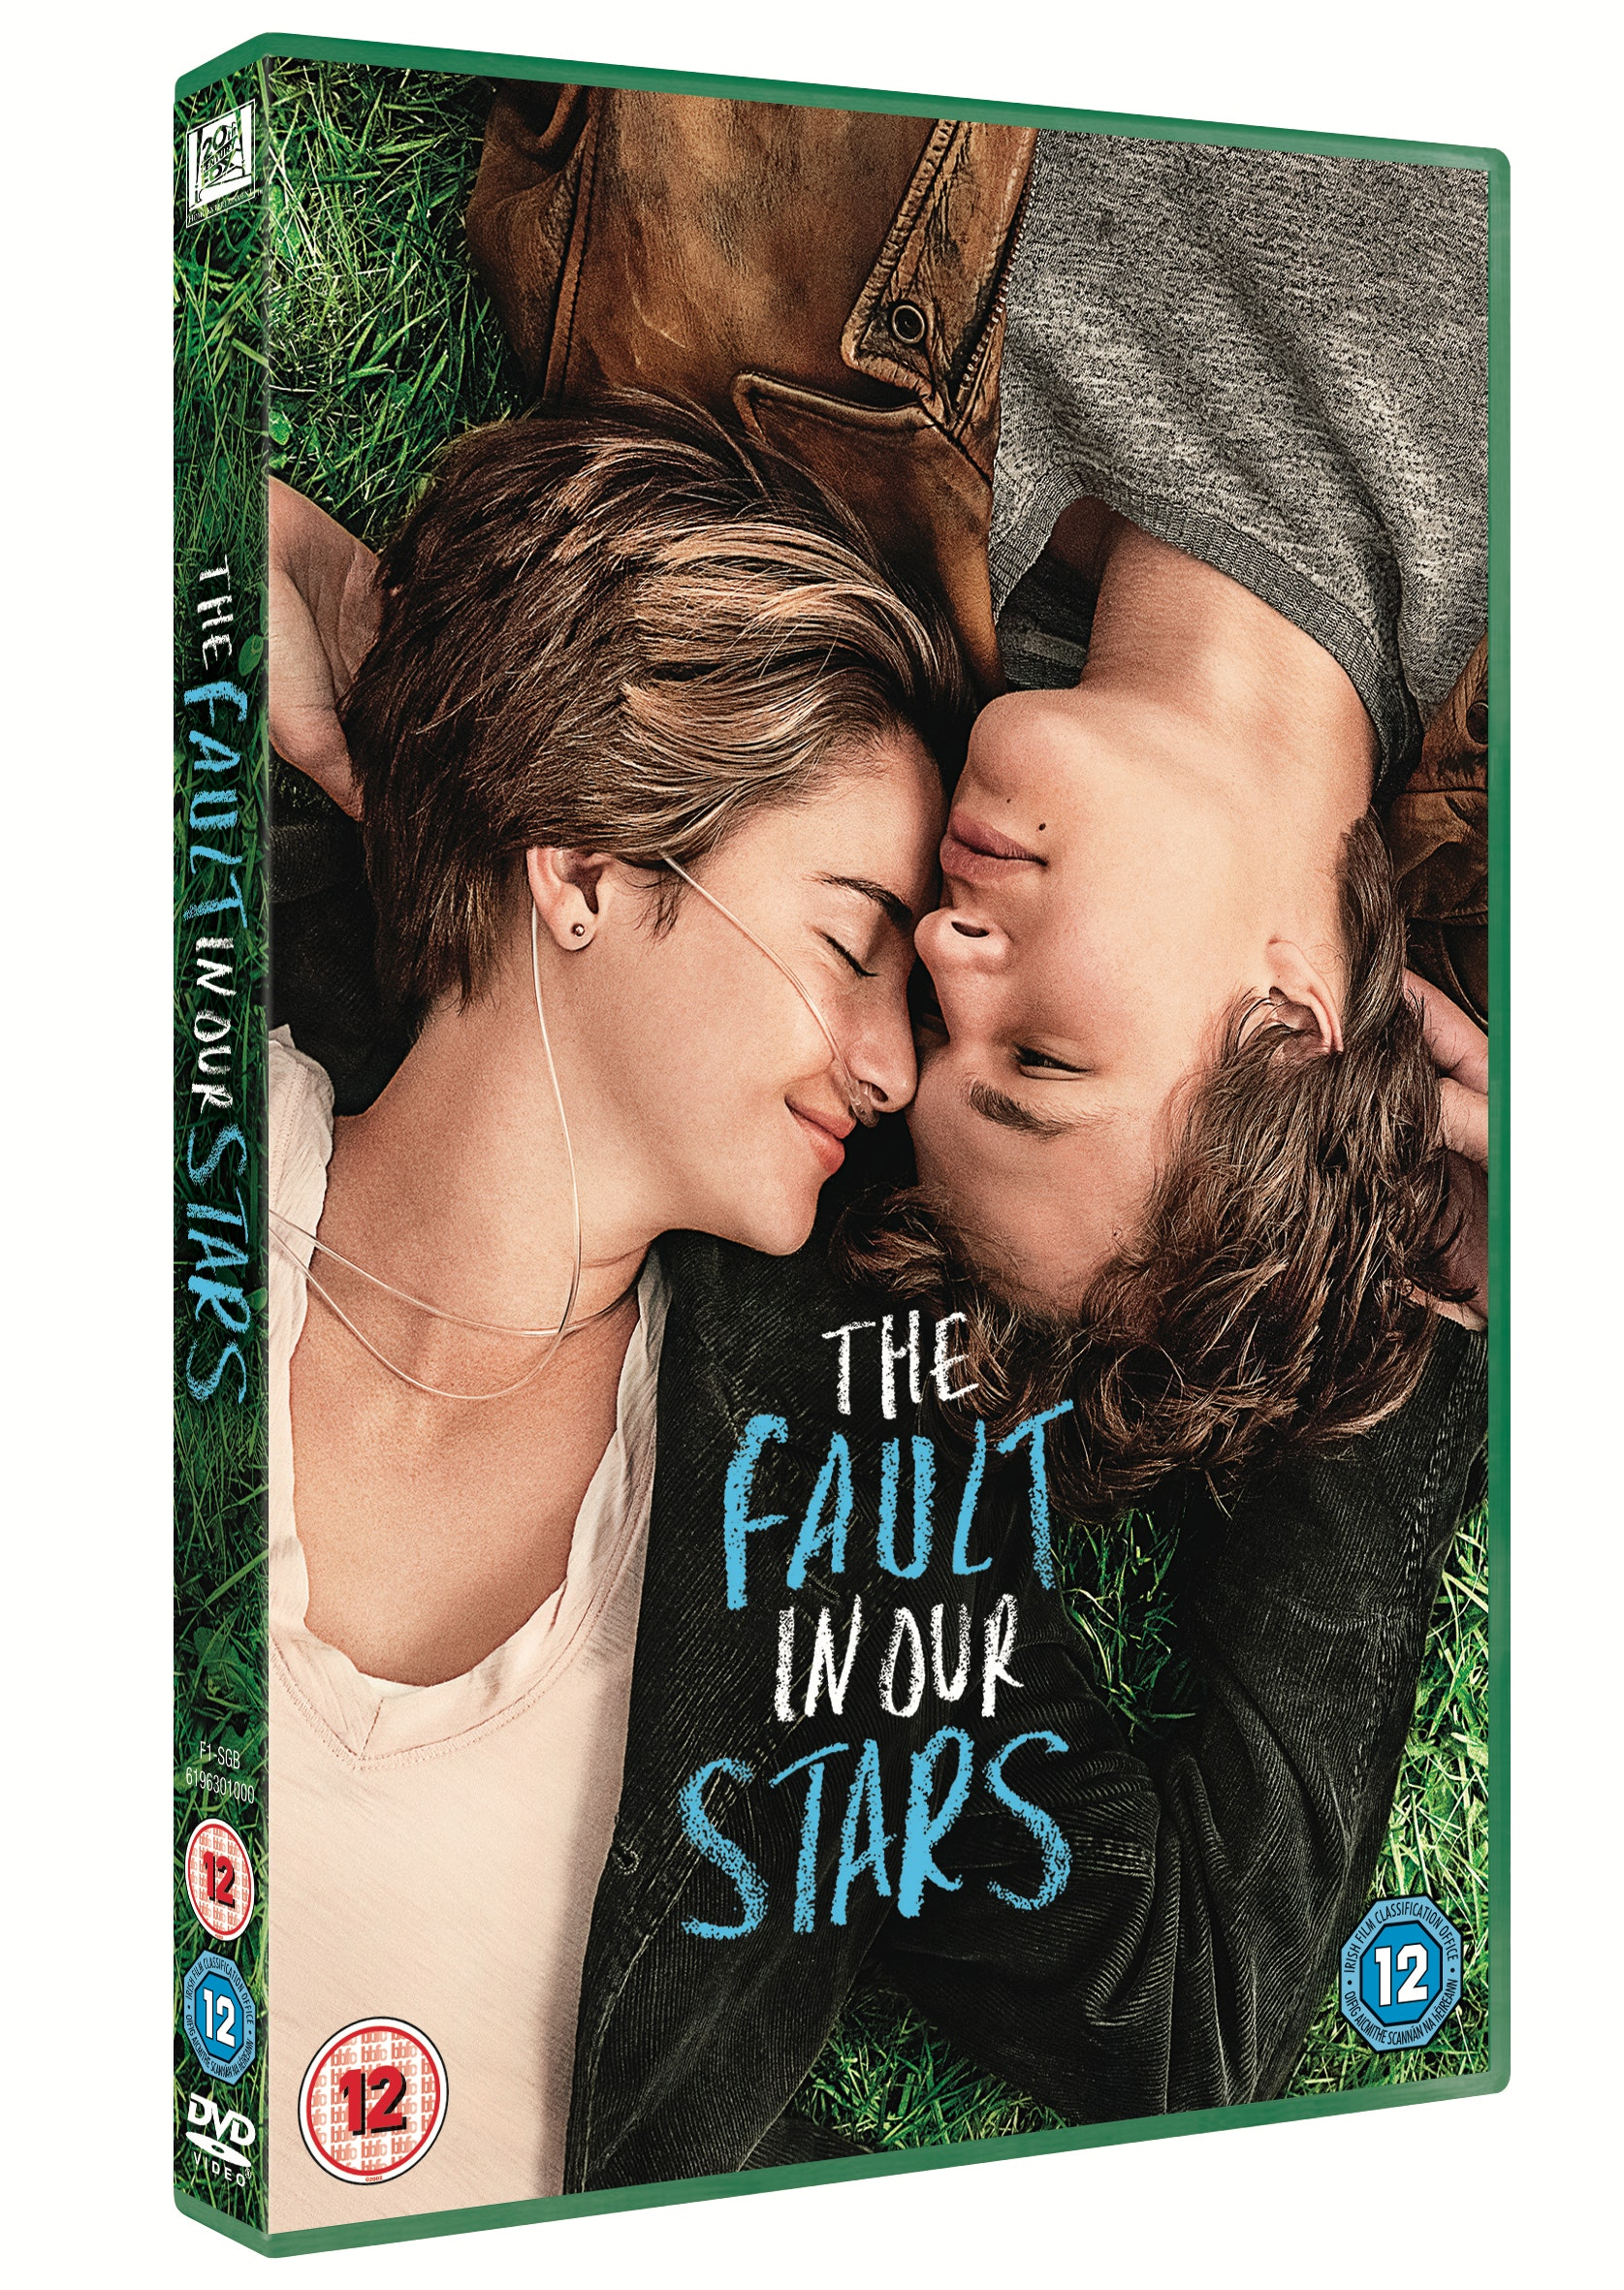 The Fault In Our Stars on Blu-ray sweepstakes